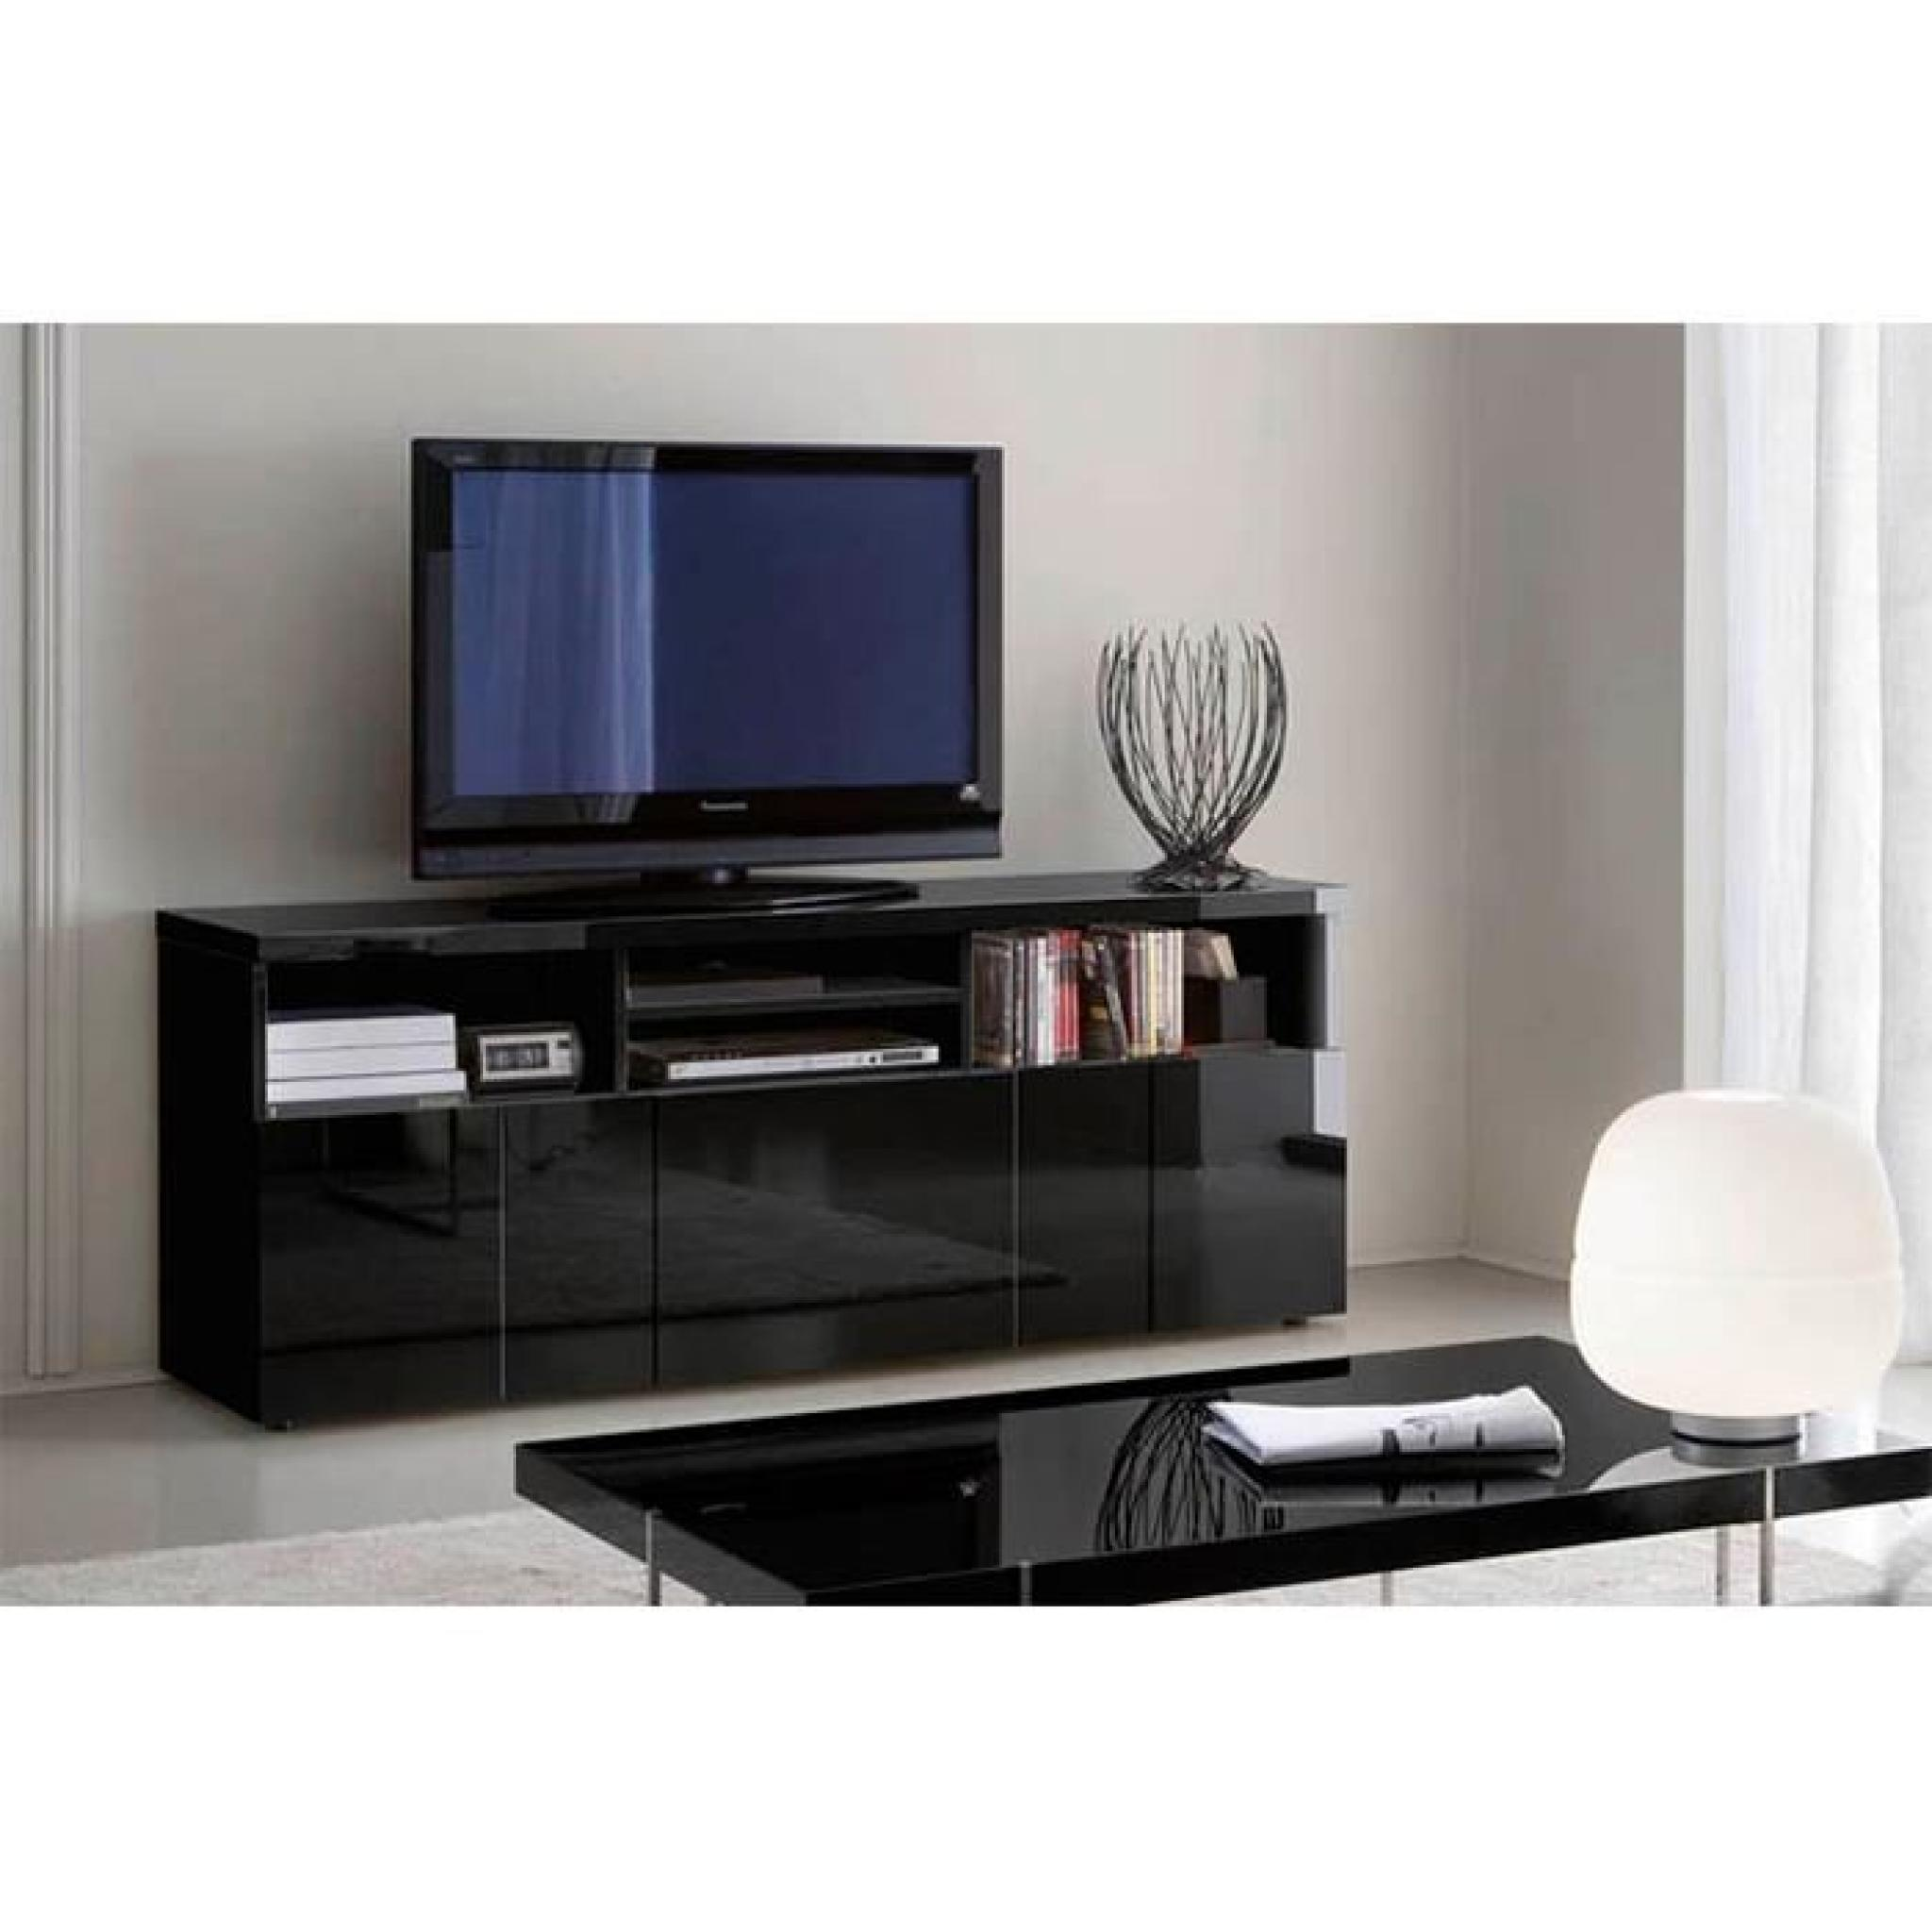 buffet meuble tv glossy noir 3 portes 4 niches achat. Black Bedroom Furniture Sets. Home Design Ideas